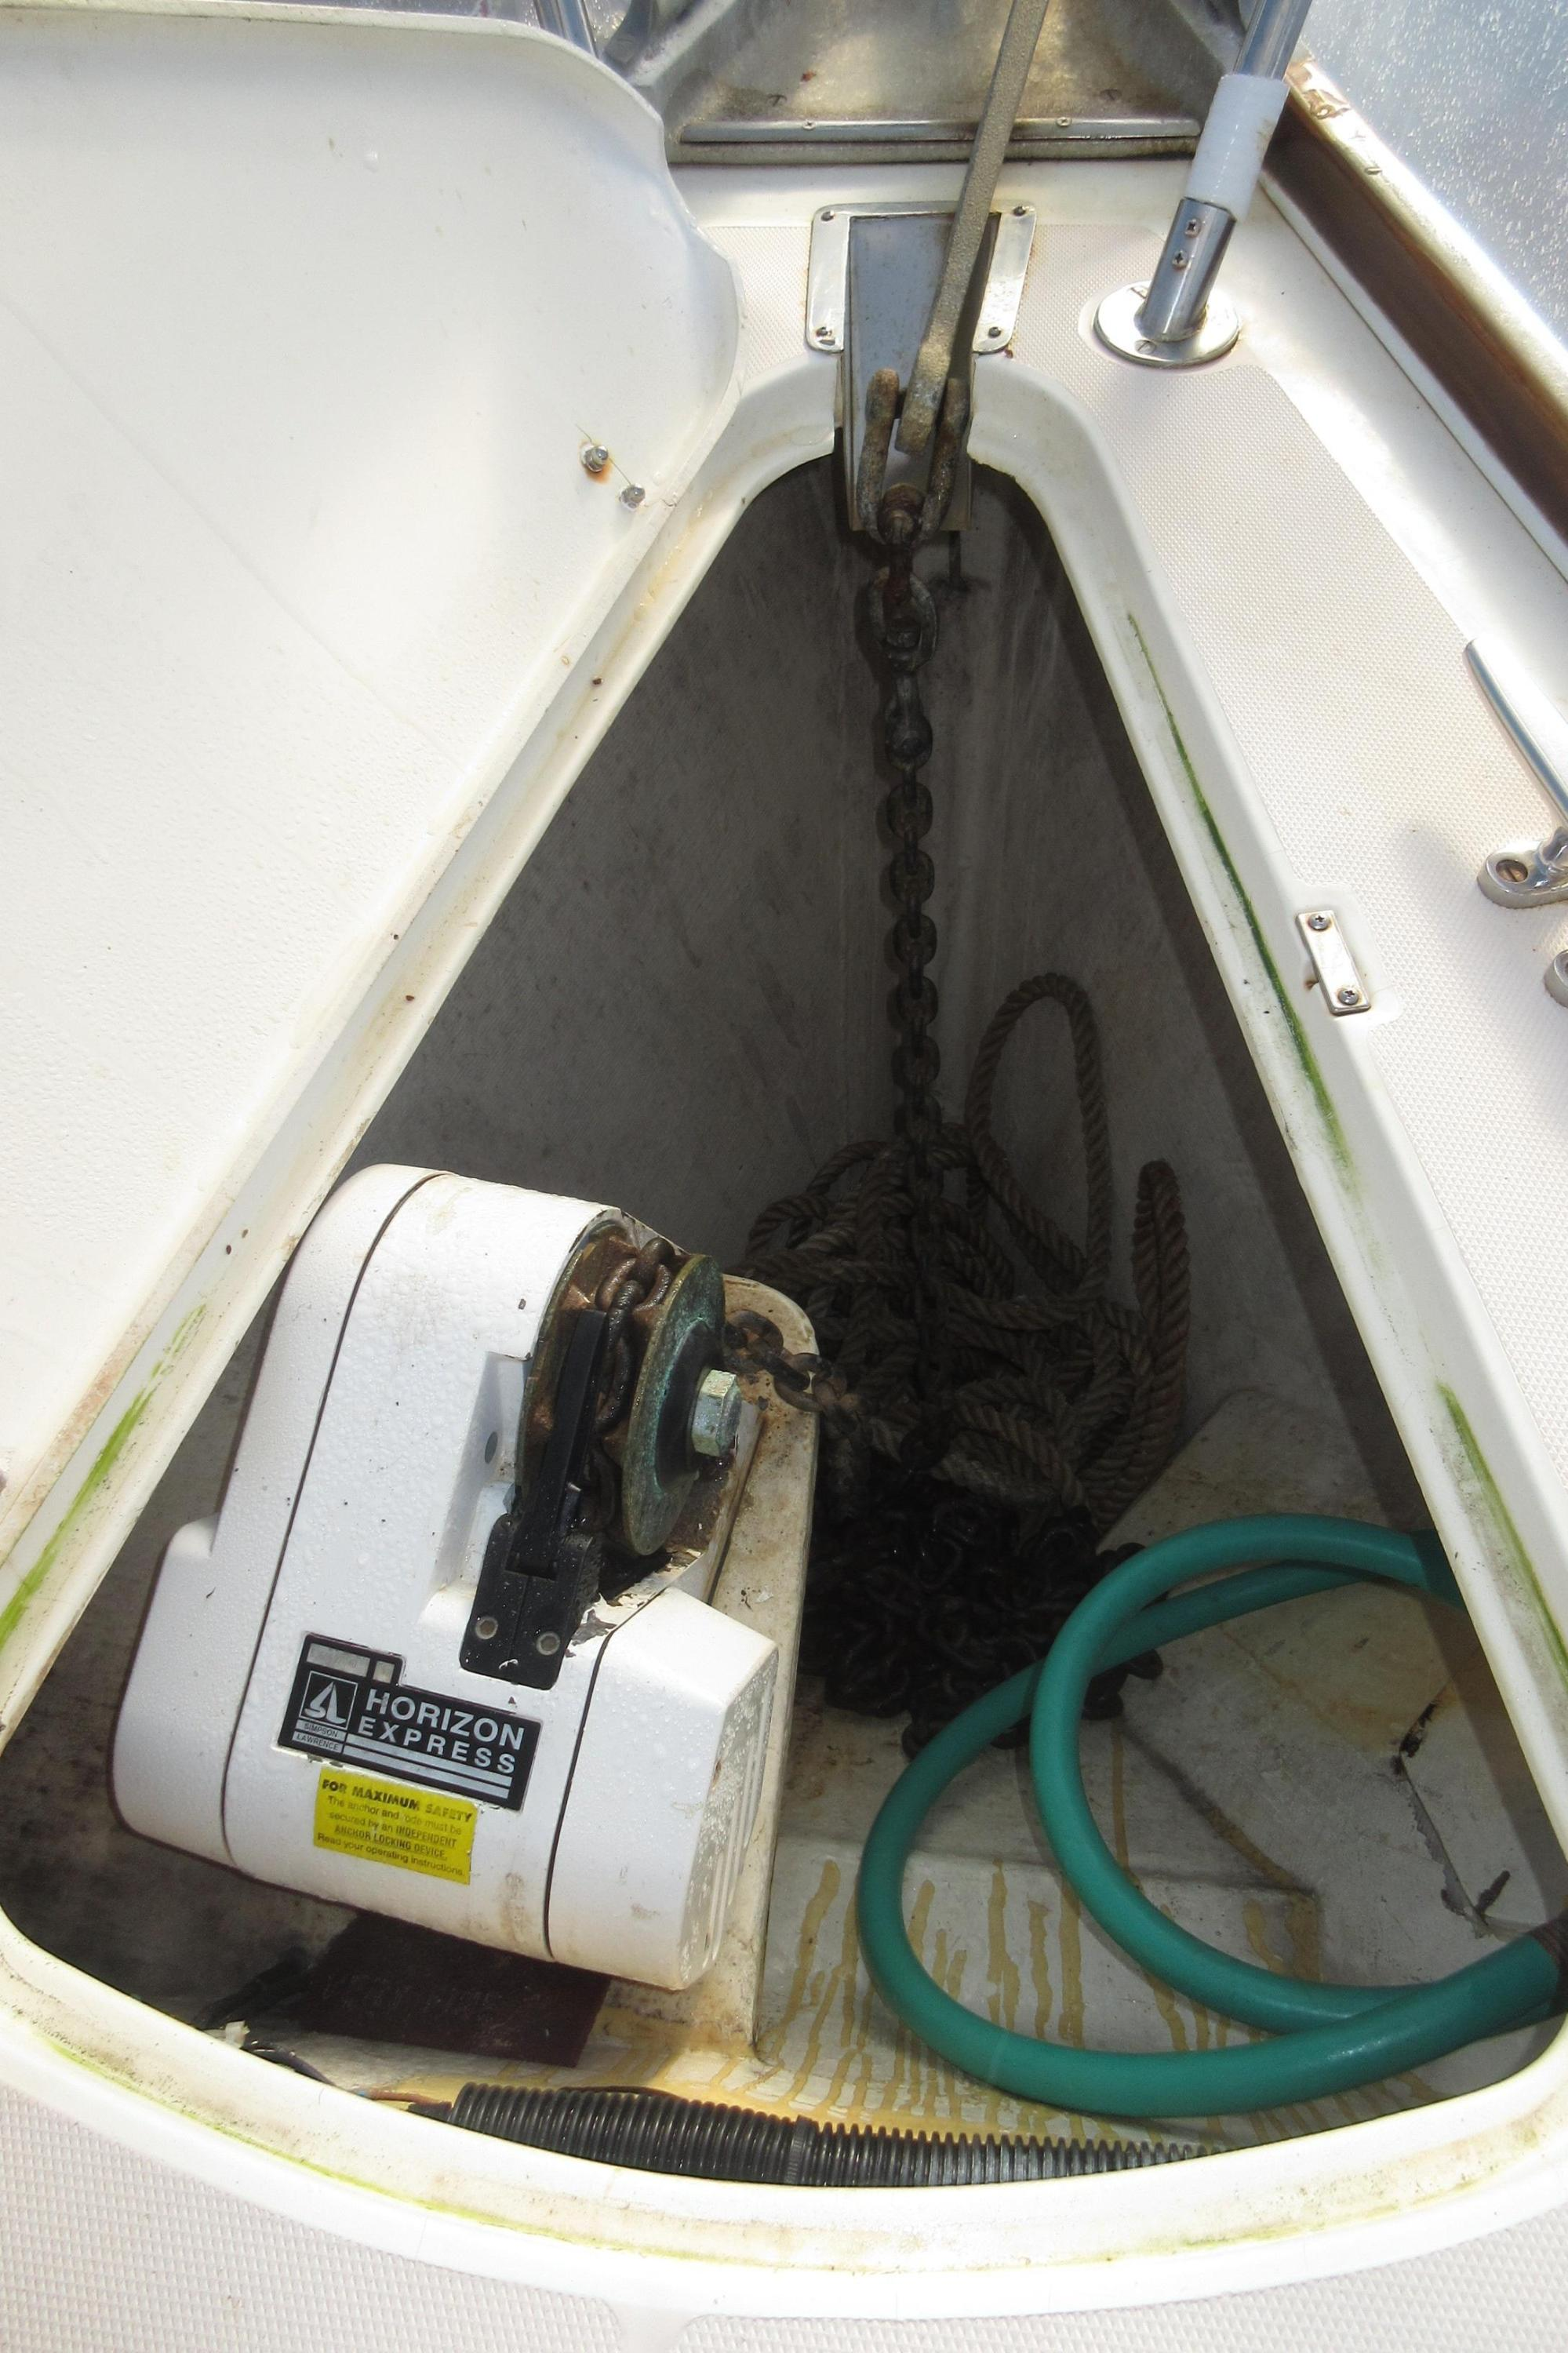 hight resolution of 40 sabre sabre 402 coatue anchor locker with windlass and washdown